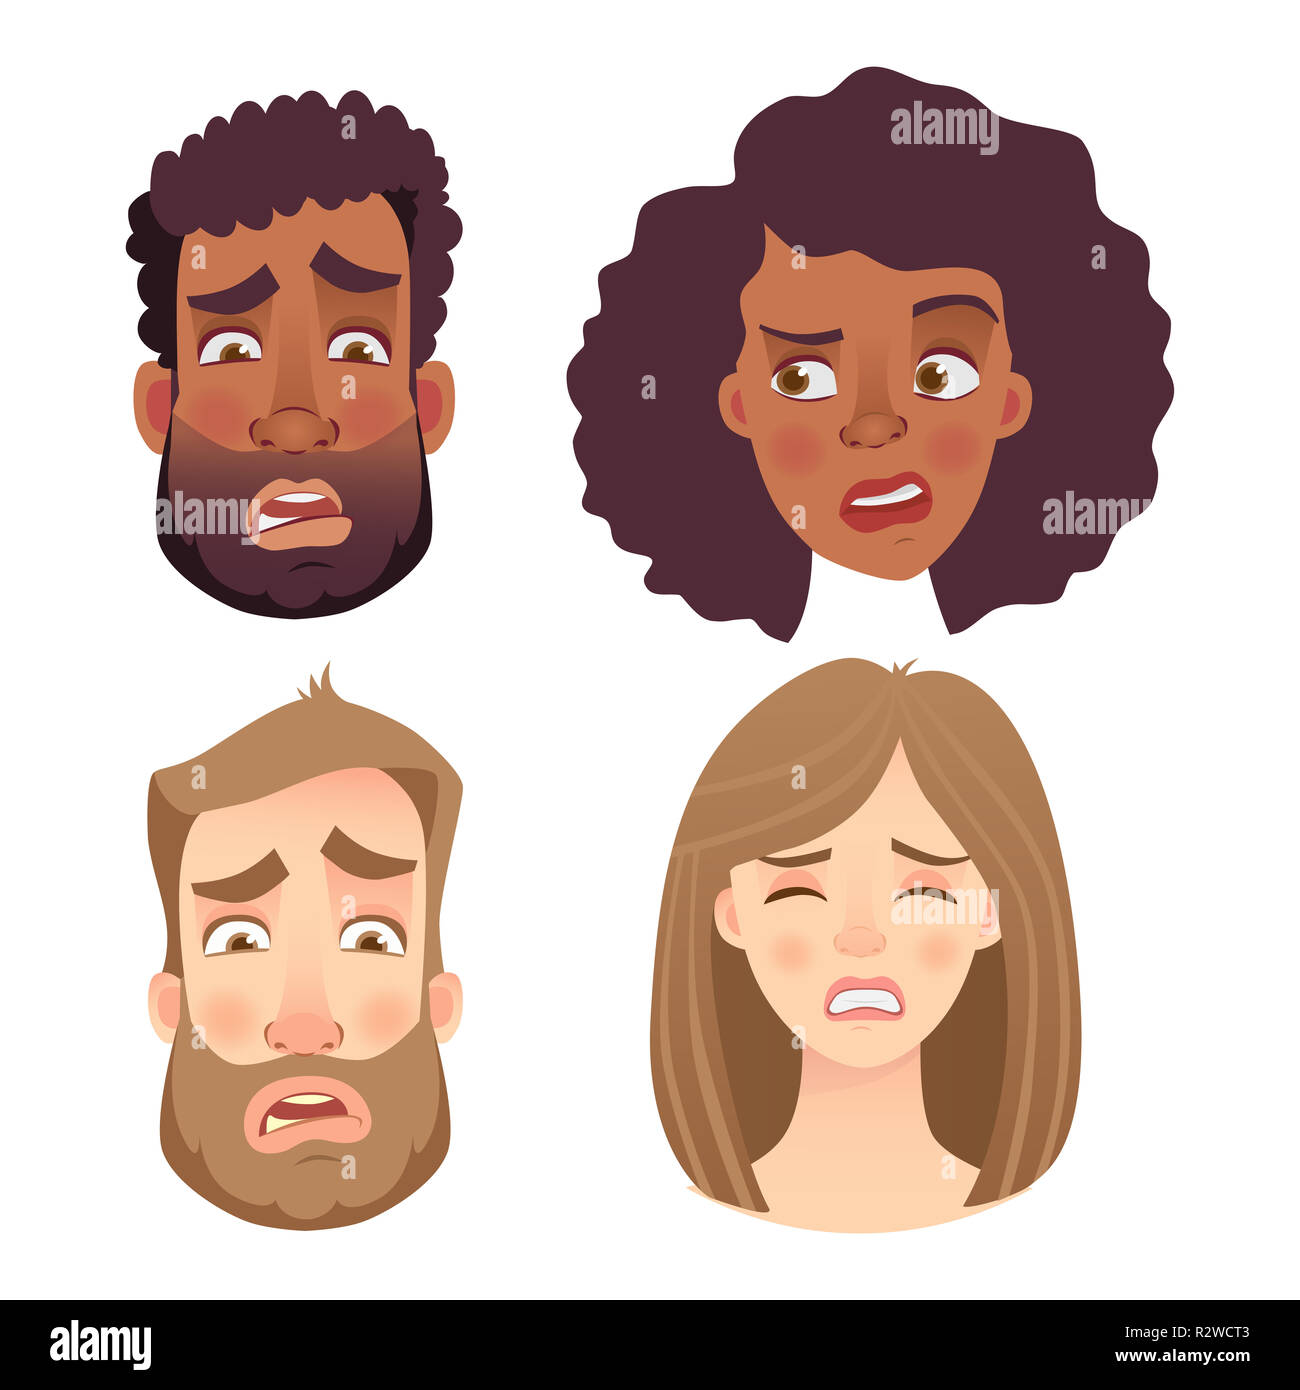 Face of man and woman. Emotions of woman face. Facial expression men illustration - Stock Image